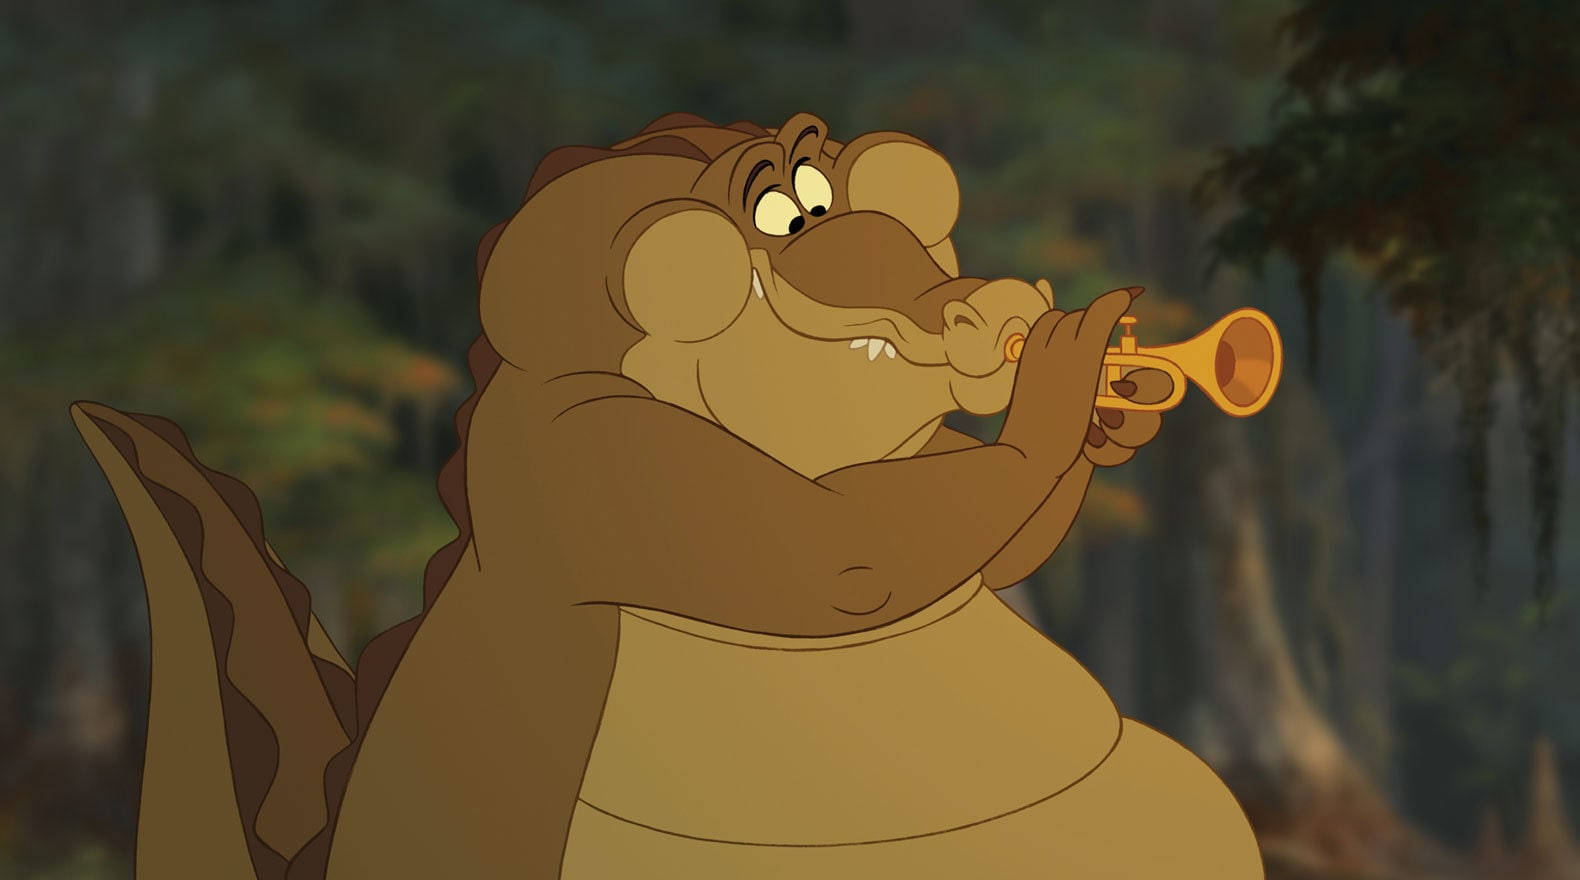 Louis voiced by Michael-Leon Wooley is an alligator playing the trumpet